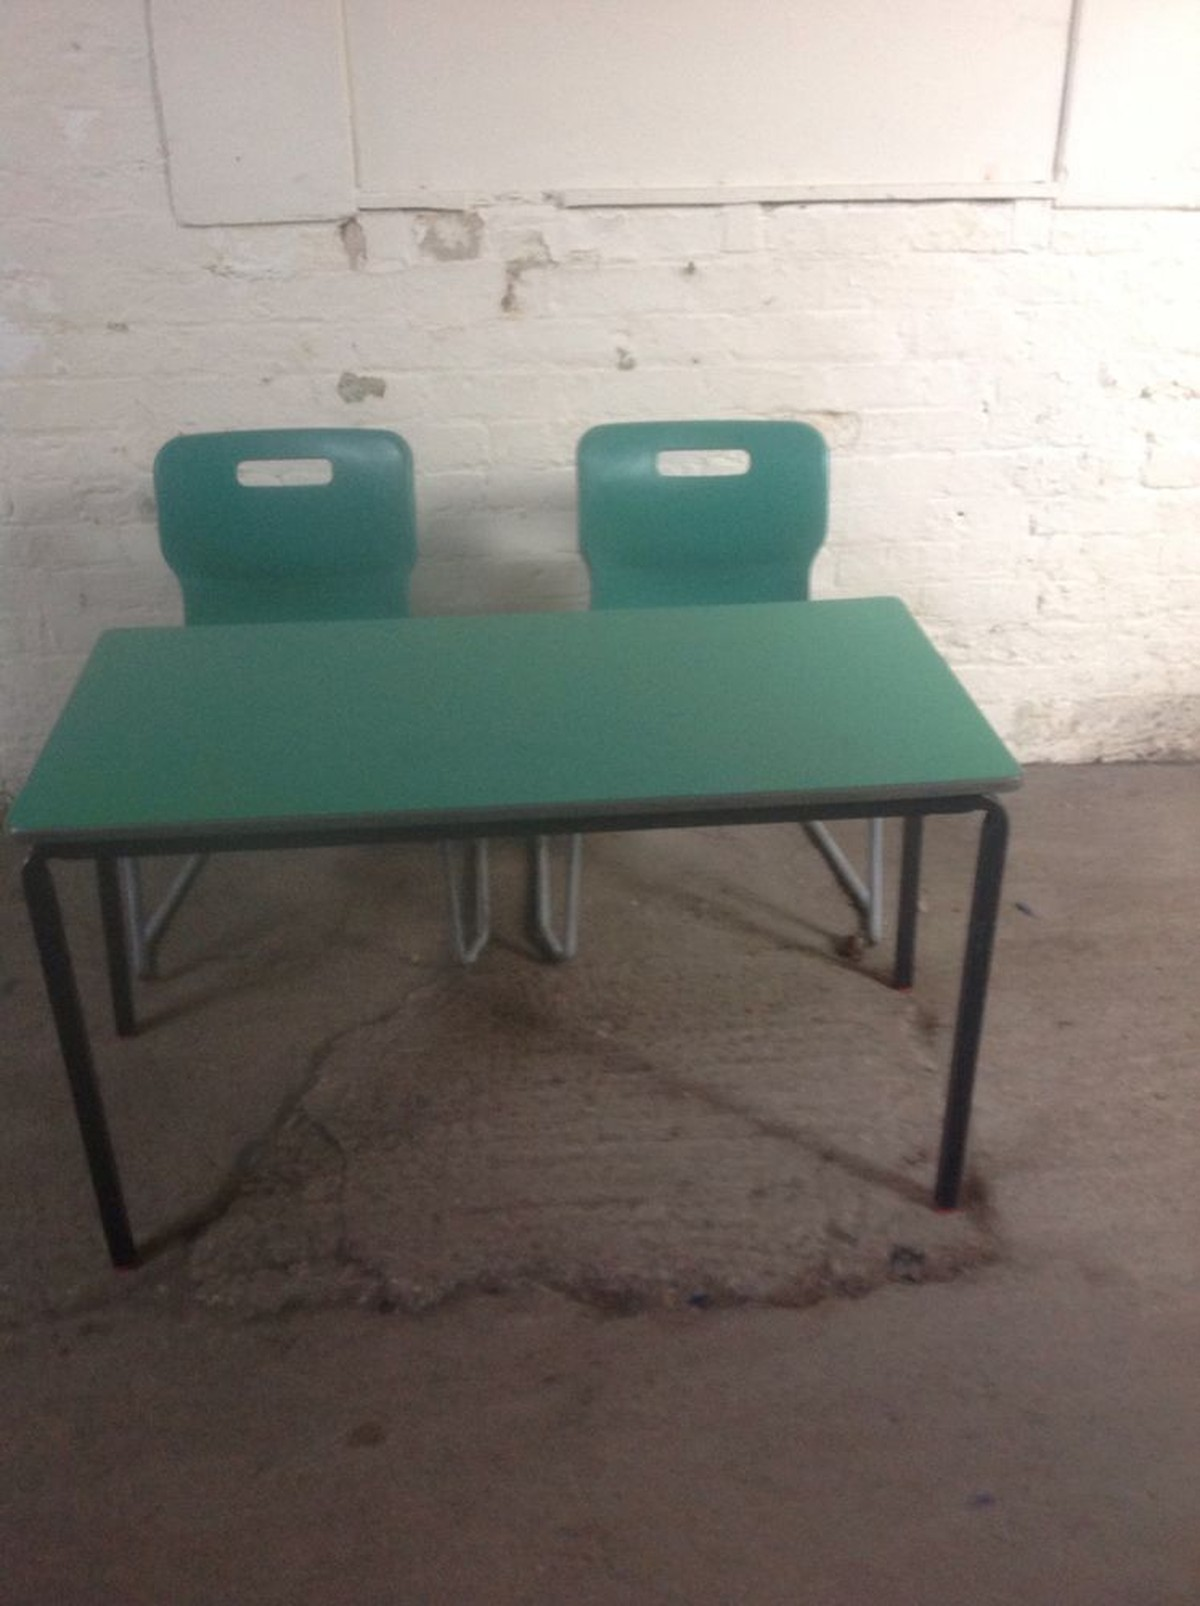 Secondhand Chairs And Tables School Playgroup And Nursery Furniture P3 School Chairs And Tables Manchester